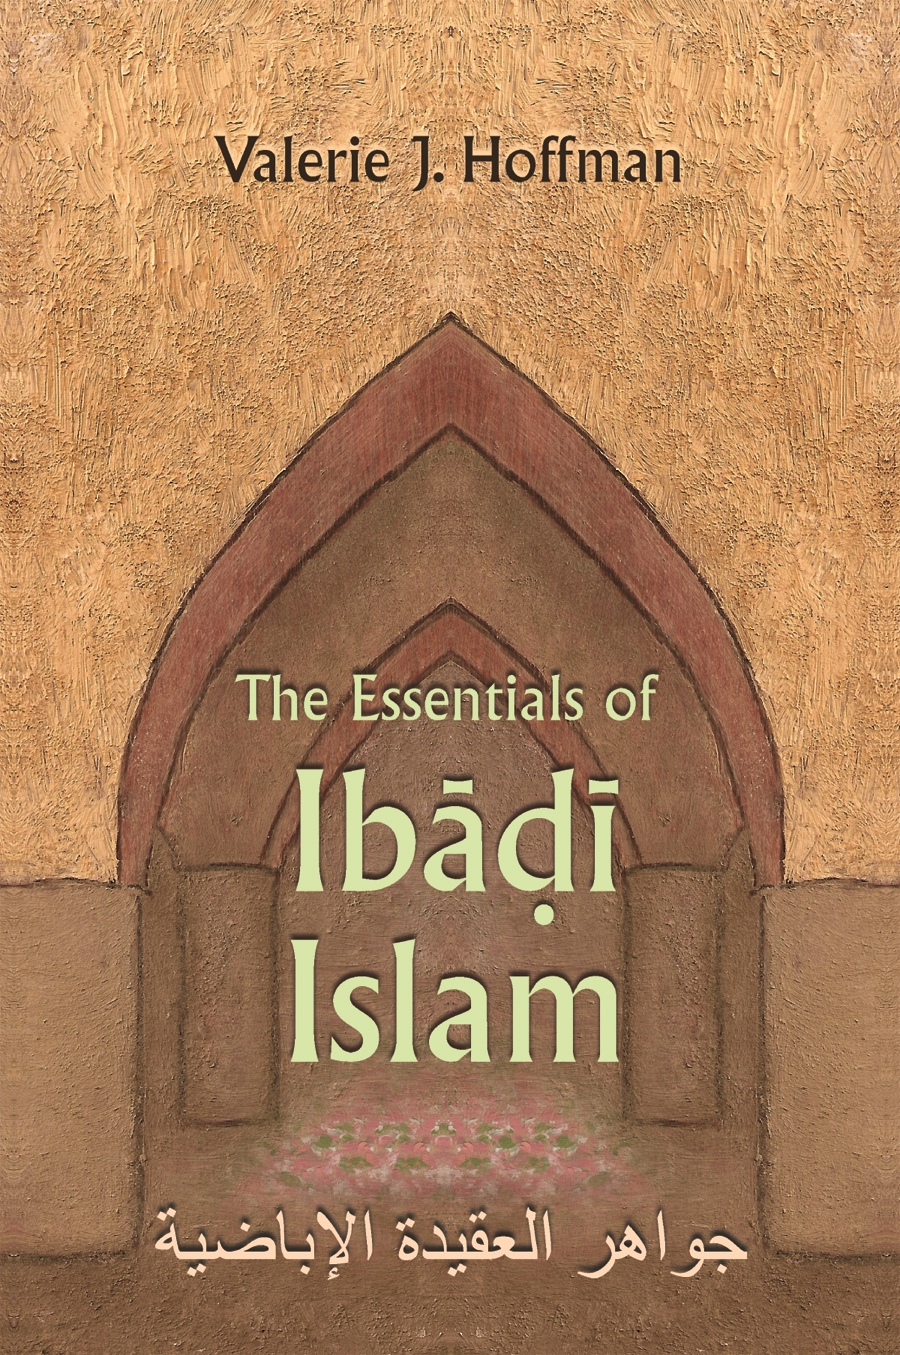 The Essentials of Ibadi Islam by Valerie Hoffman | Read